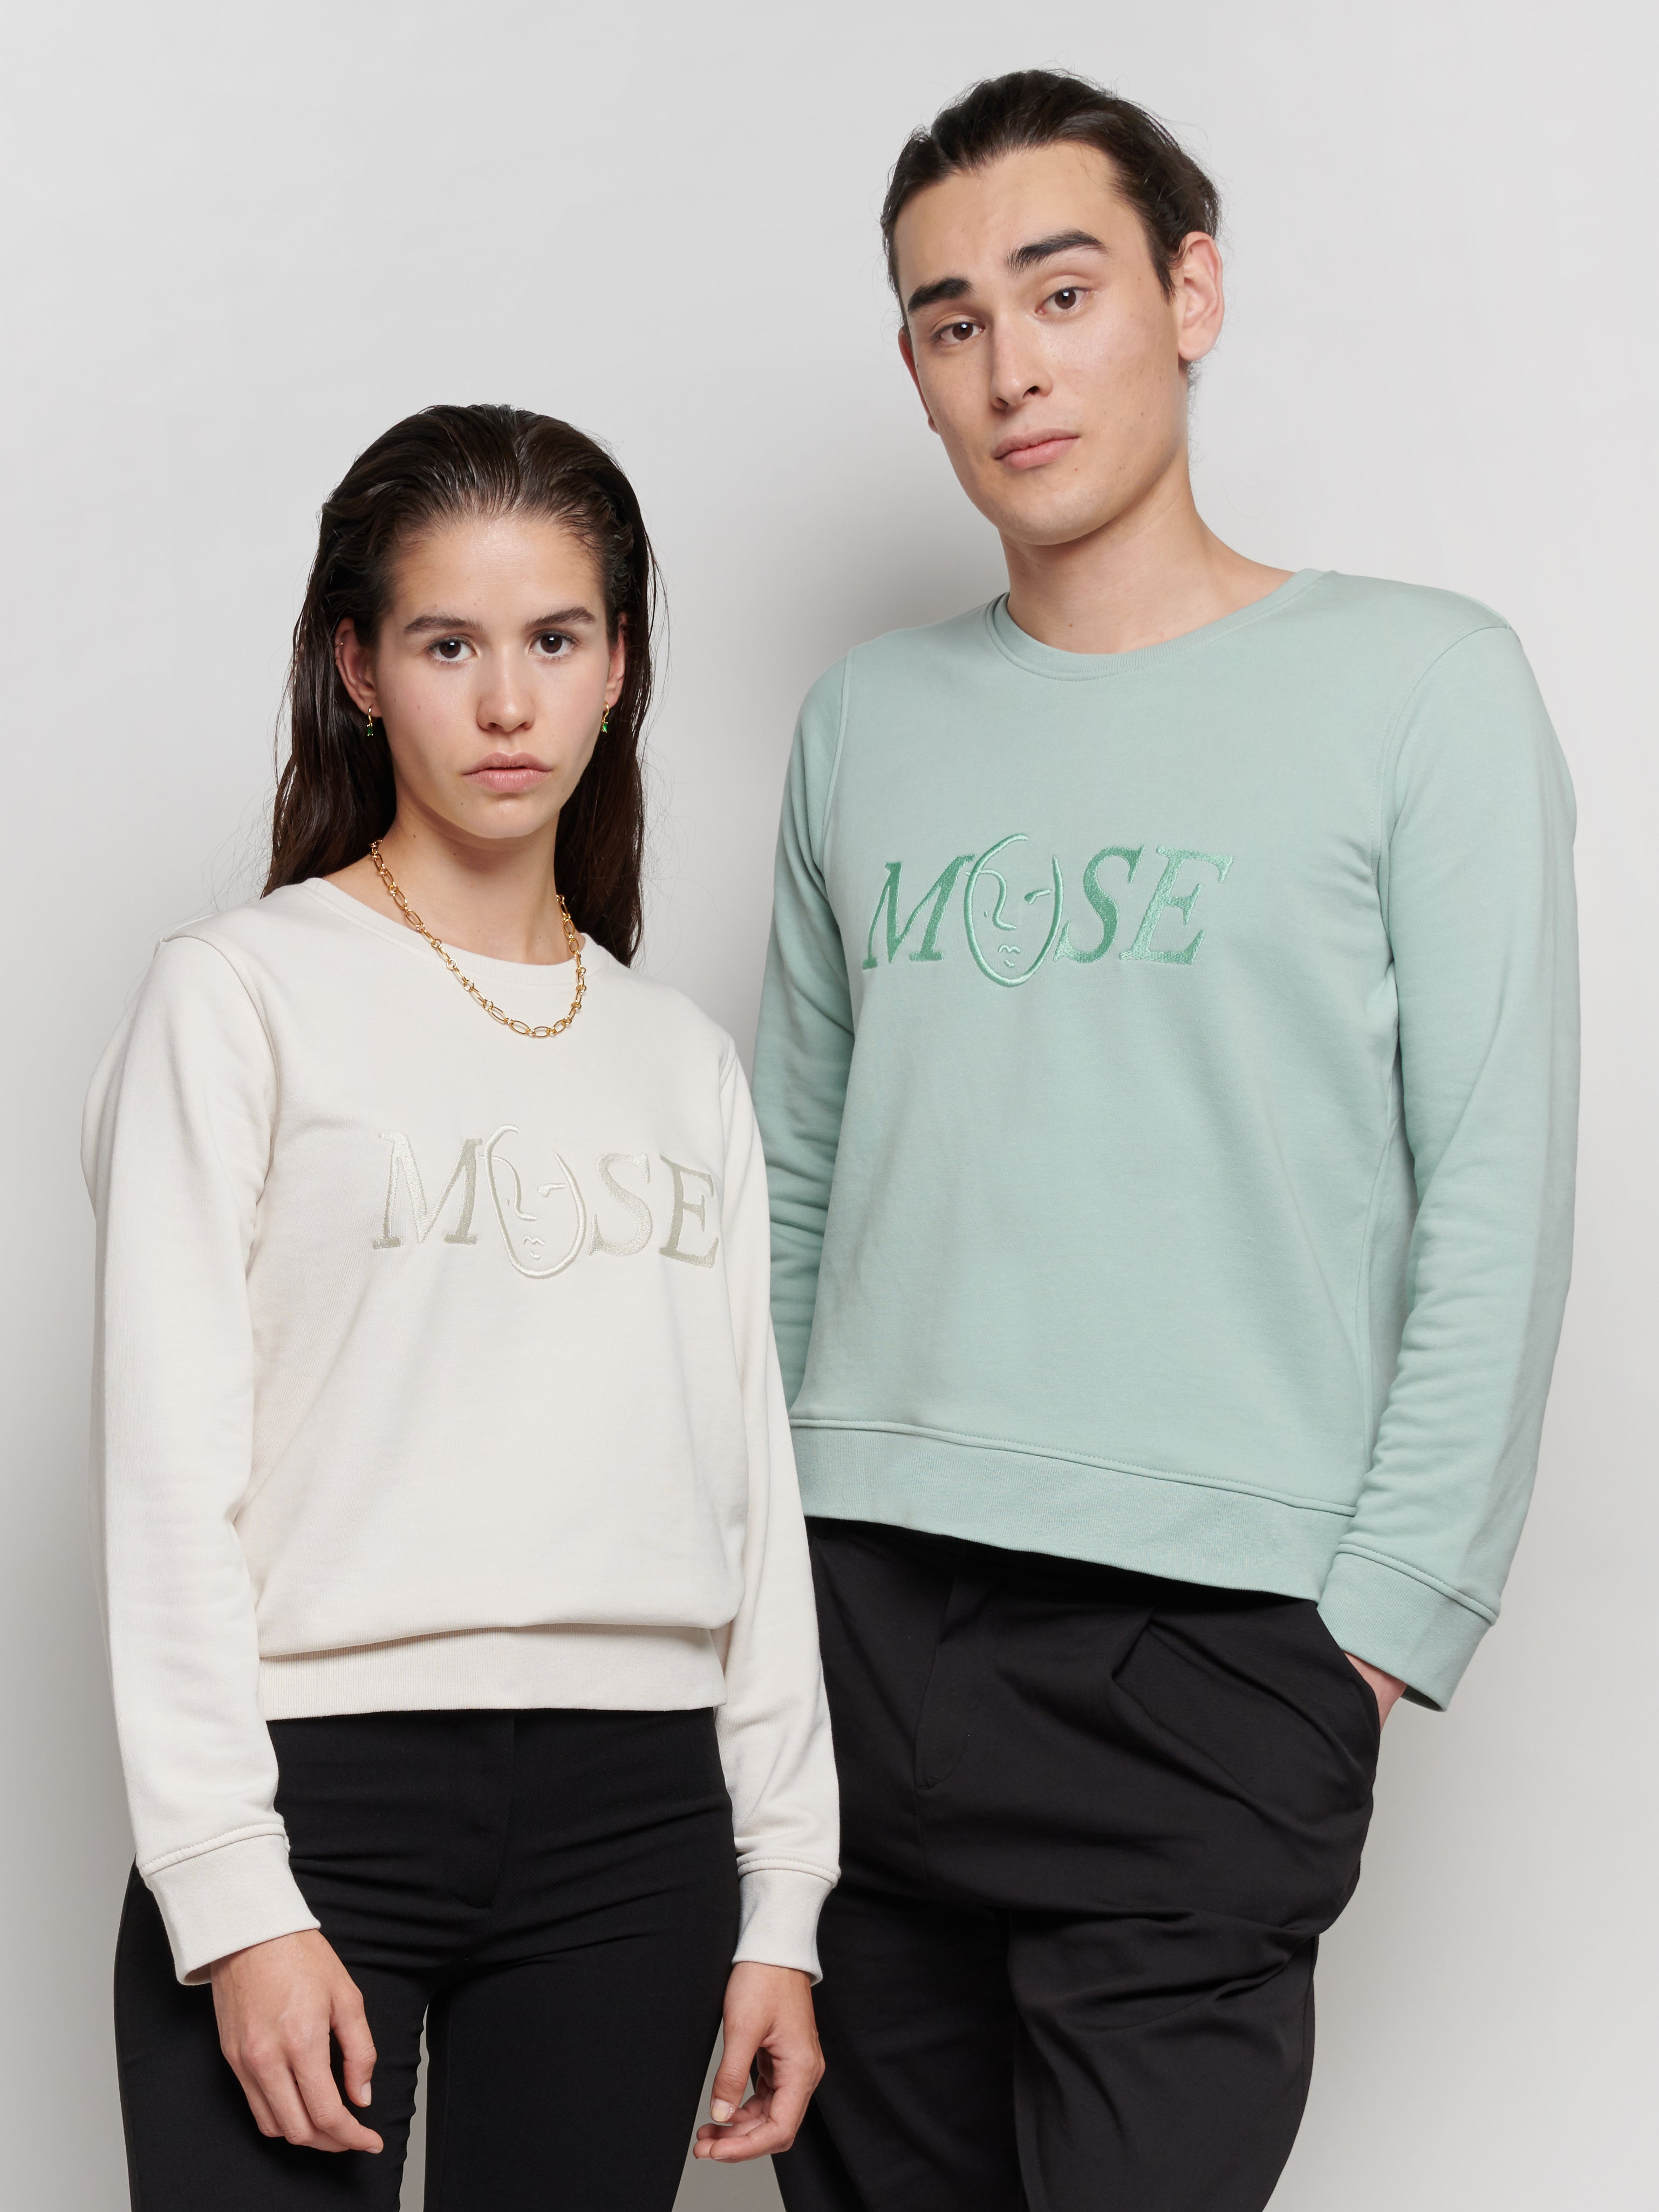 'MUSE' Embroidery Sweater